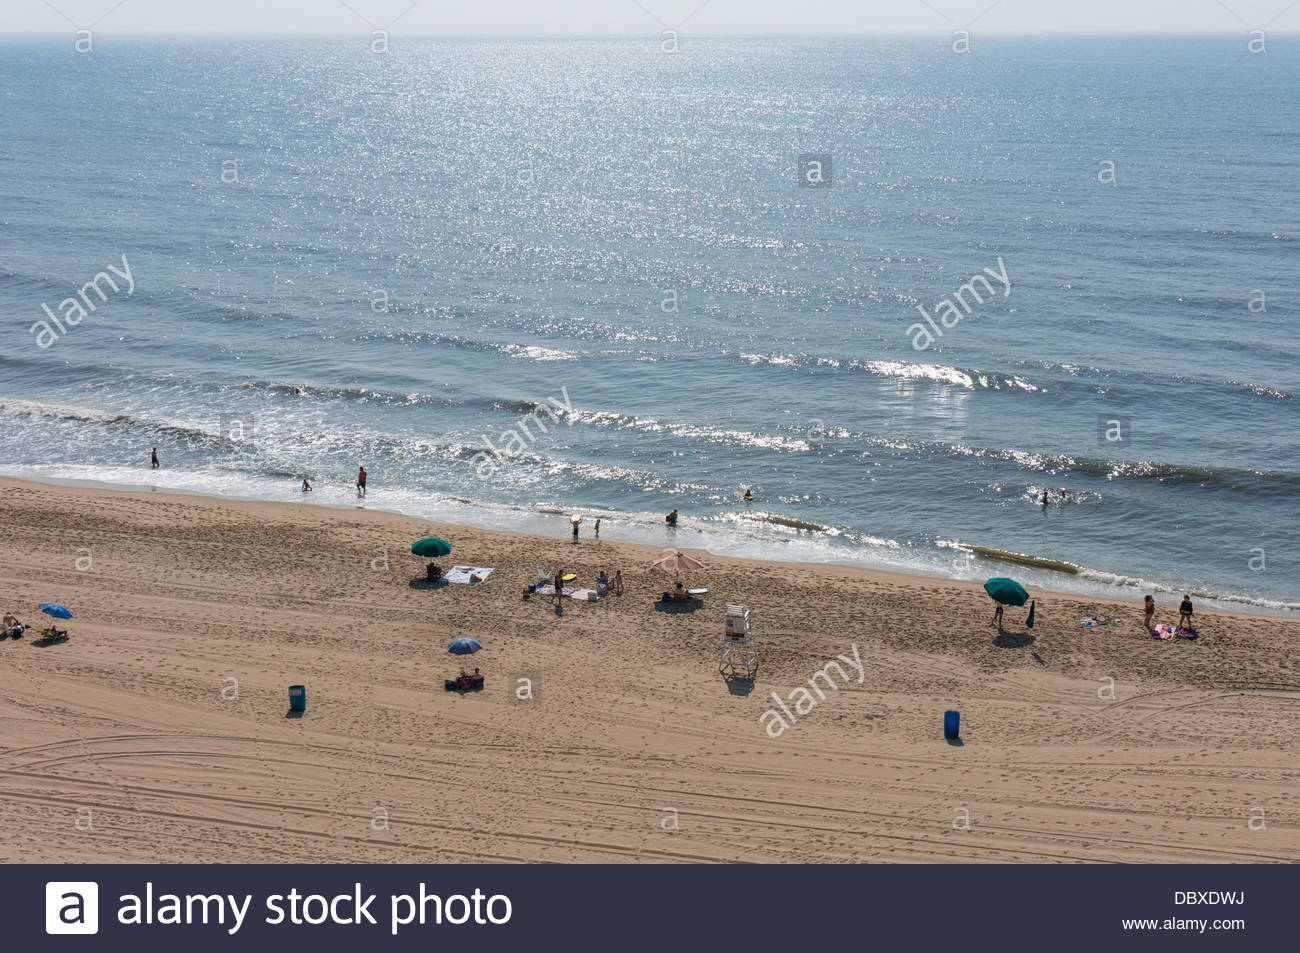 Vacationers stake out positions on the early morning beach in Ocean City, Maryland. - Stock Image